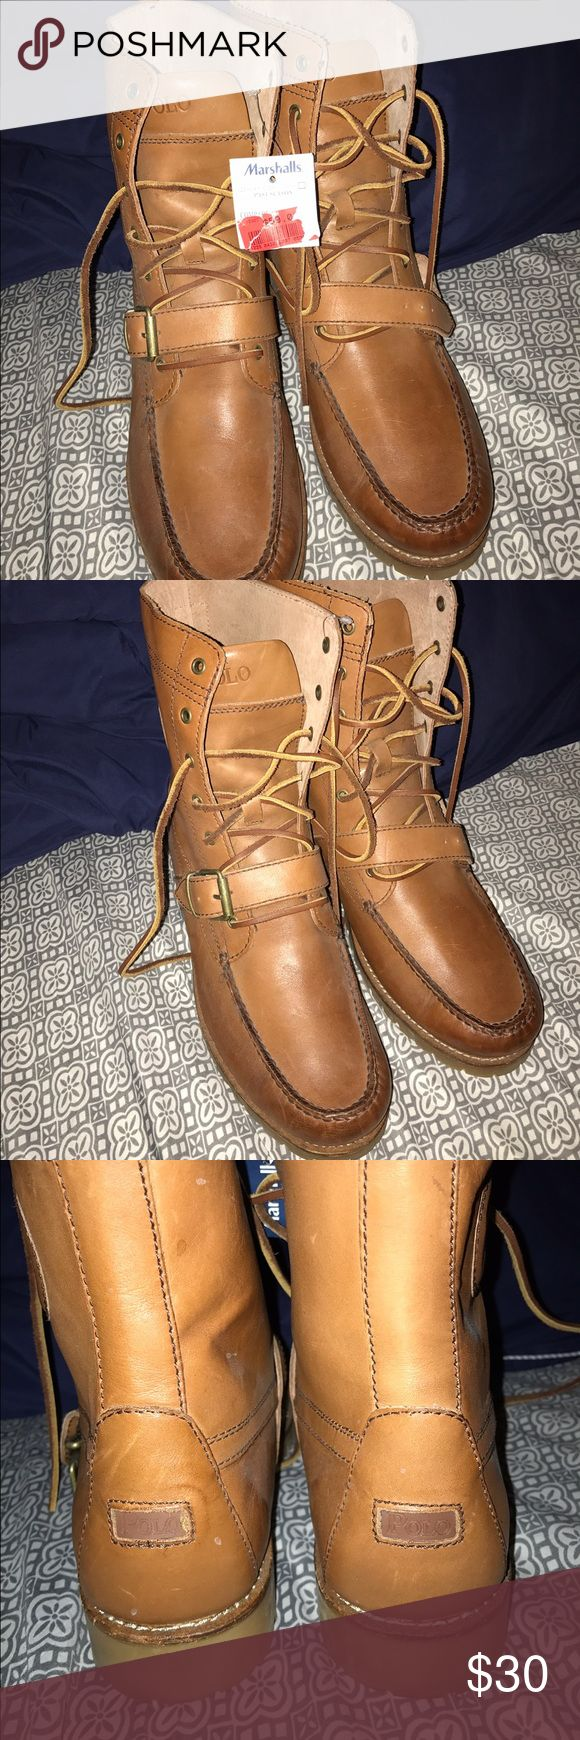 Ralph Lauren Polo Boots Brand new with tags. Ralph Lauren Polo Boots. Men. Size 11.5. Never worn. Bought at Marshalls as seen on the tag. Polo by Ralph Lauren Shoes Boots